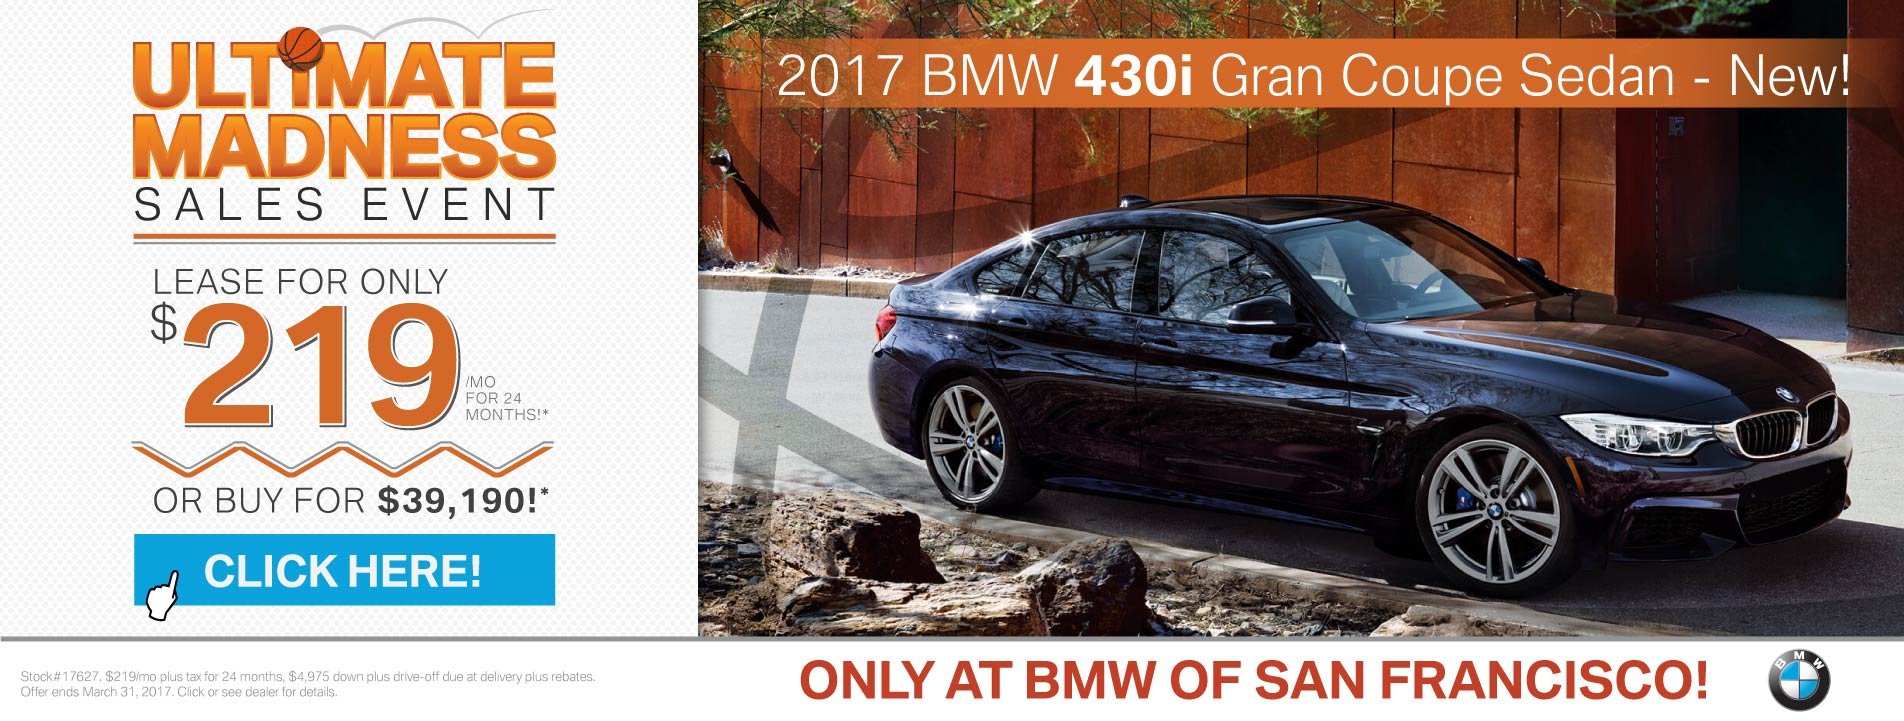 2017 BMW 4 Series Offer